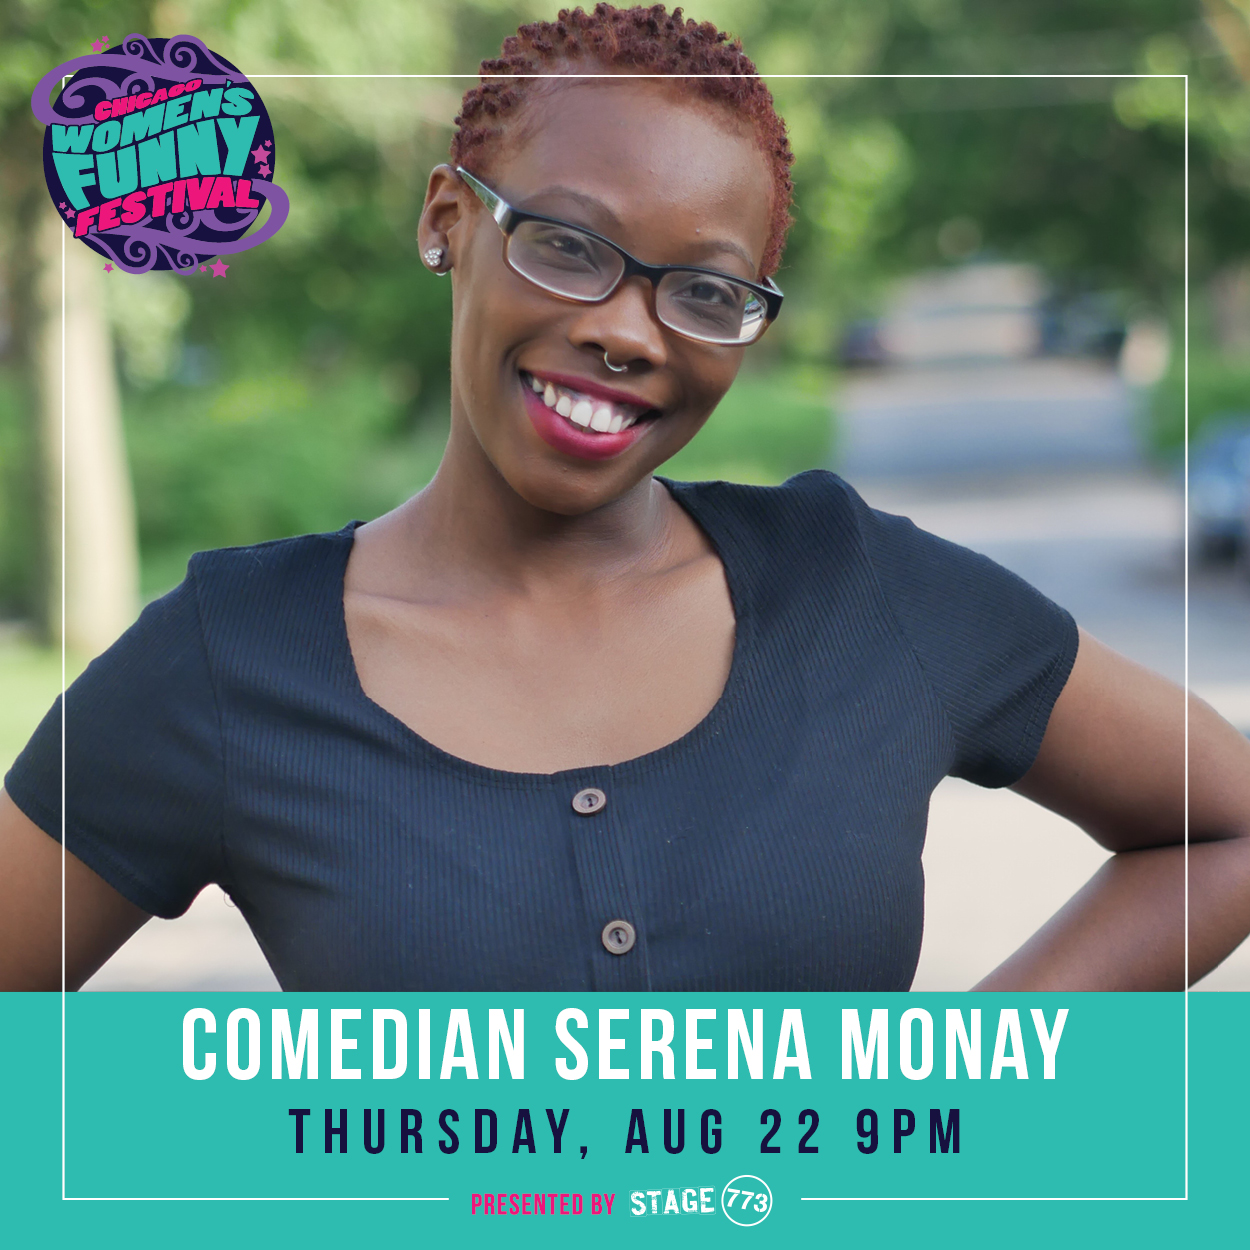 ComedianSerenaMonay_Thursday_9PM_CWFF2019.jpg